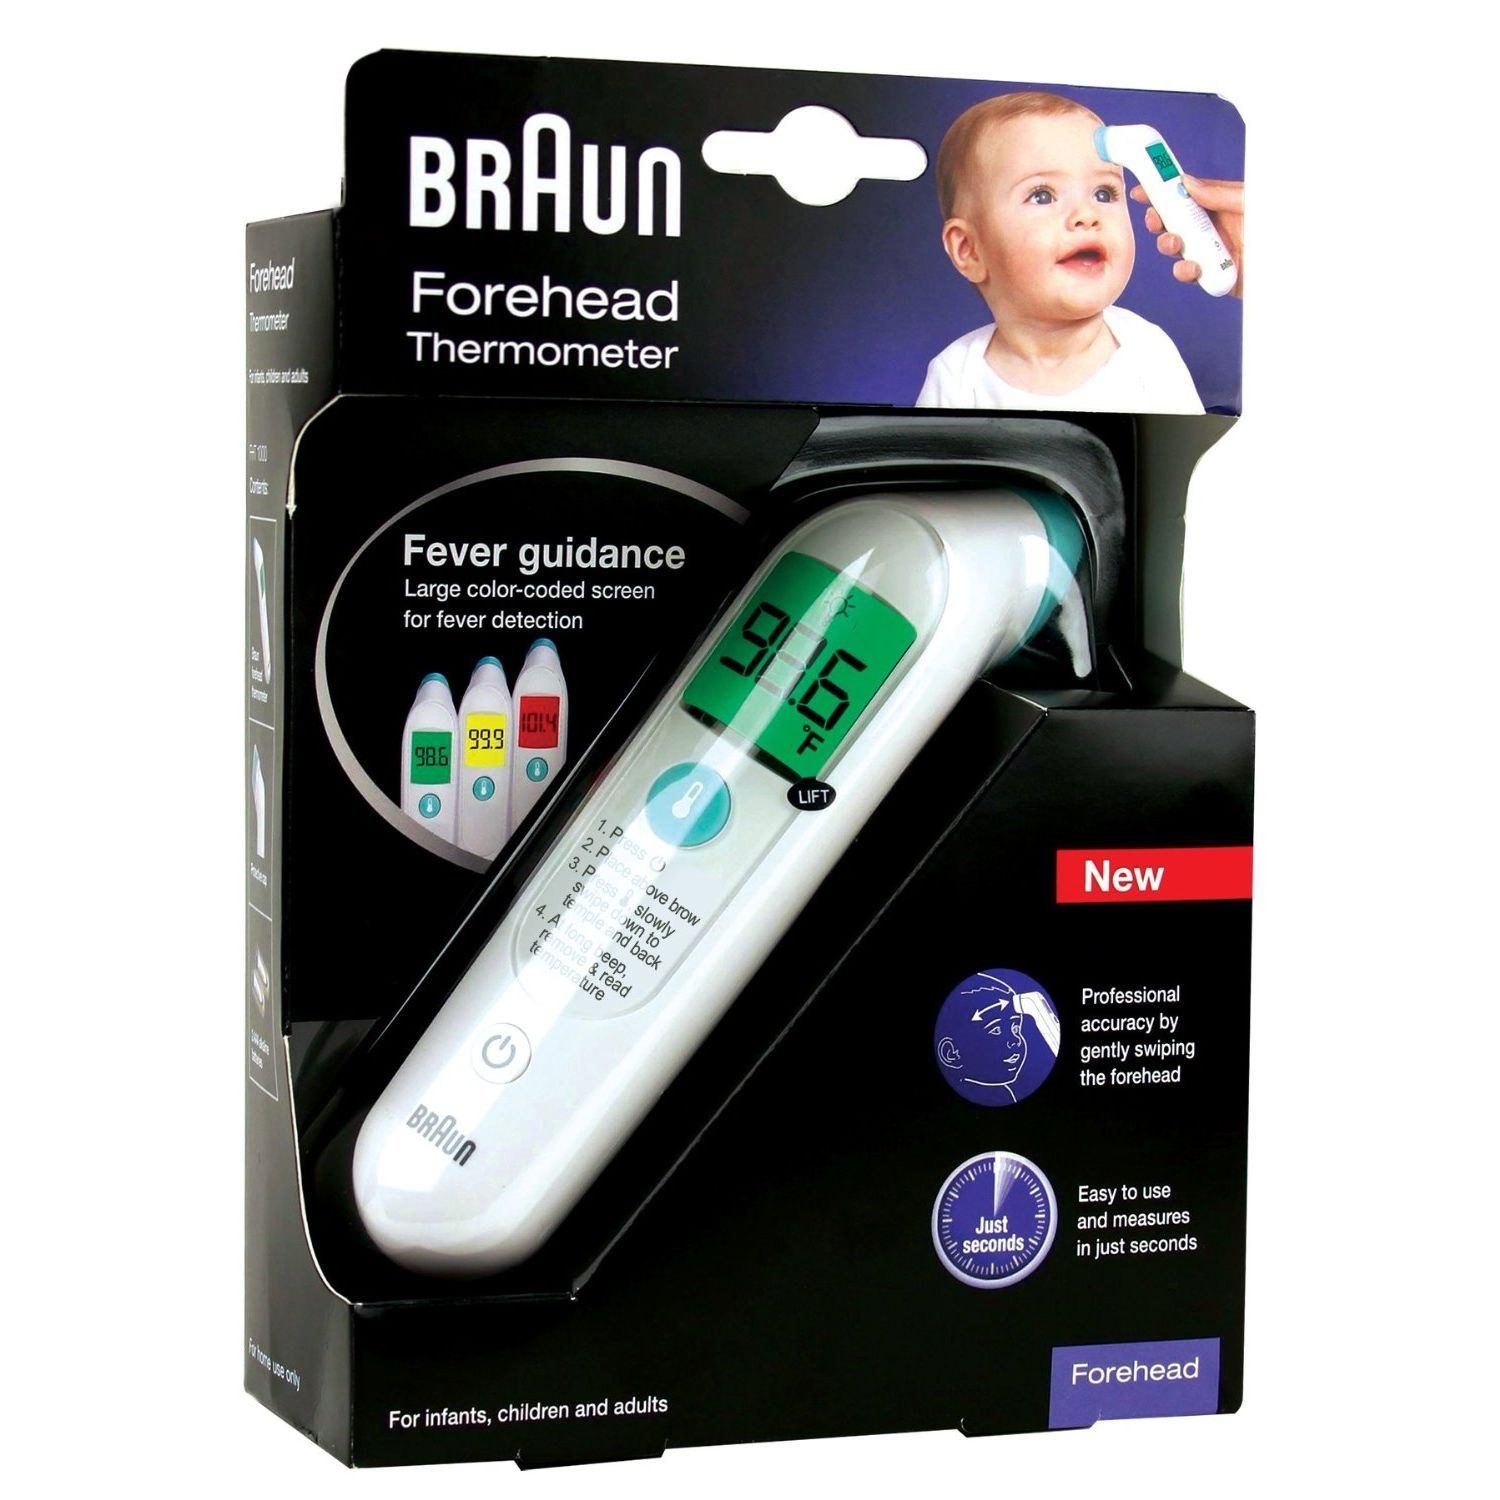 Braun Forehead Thermometer, 1.0 CT